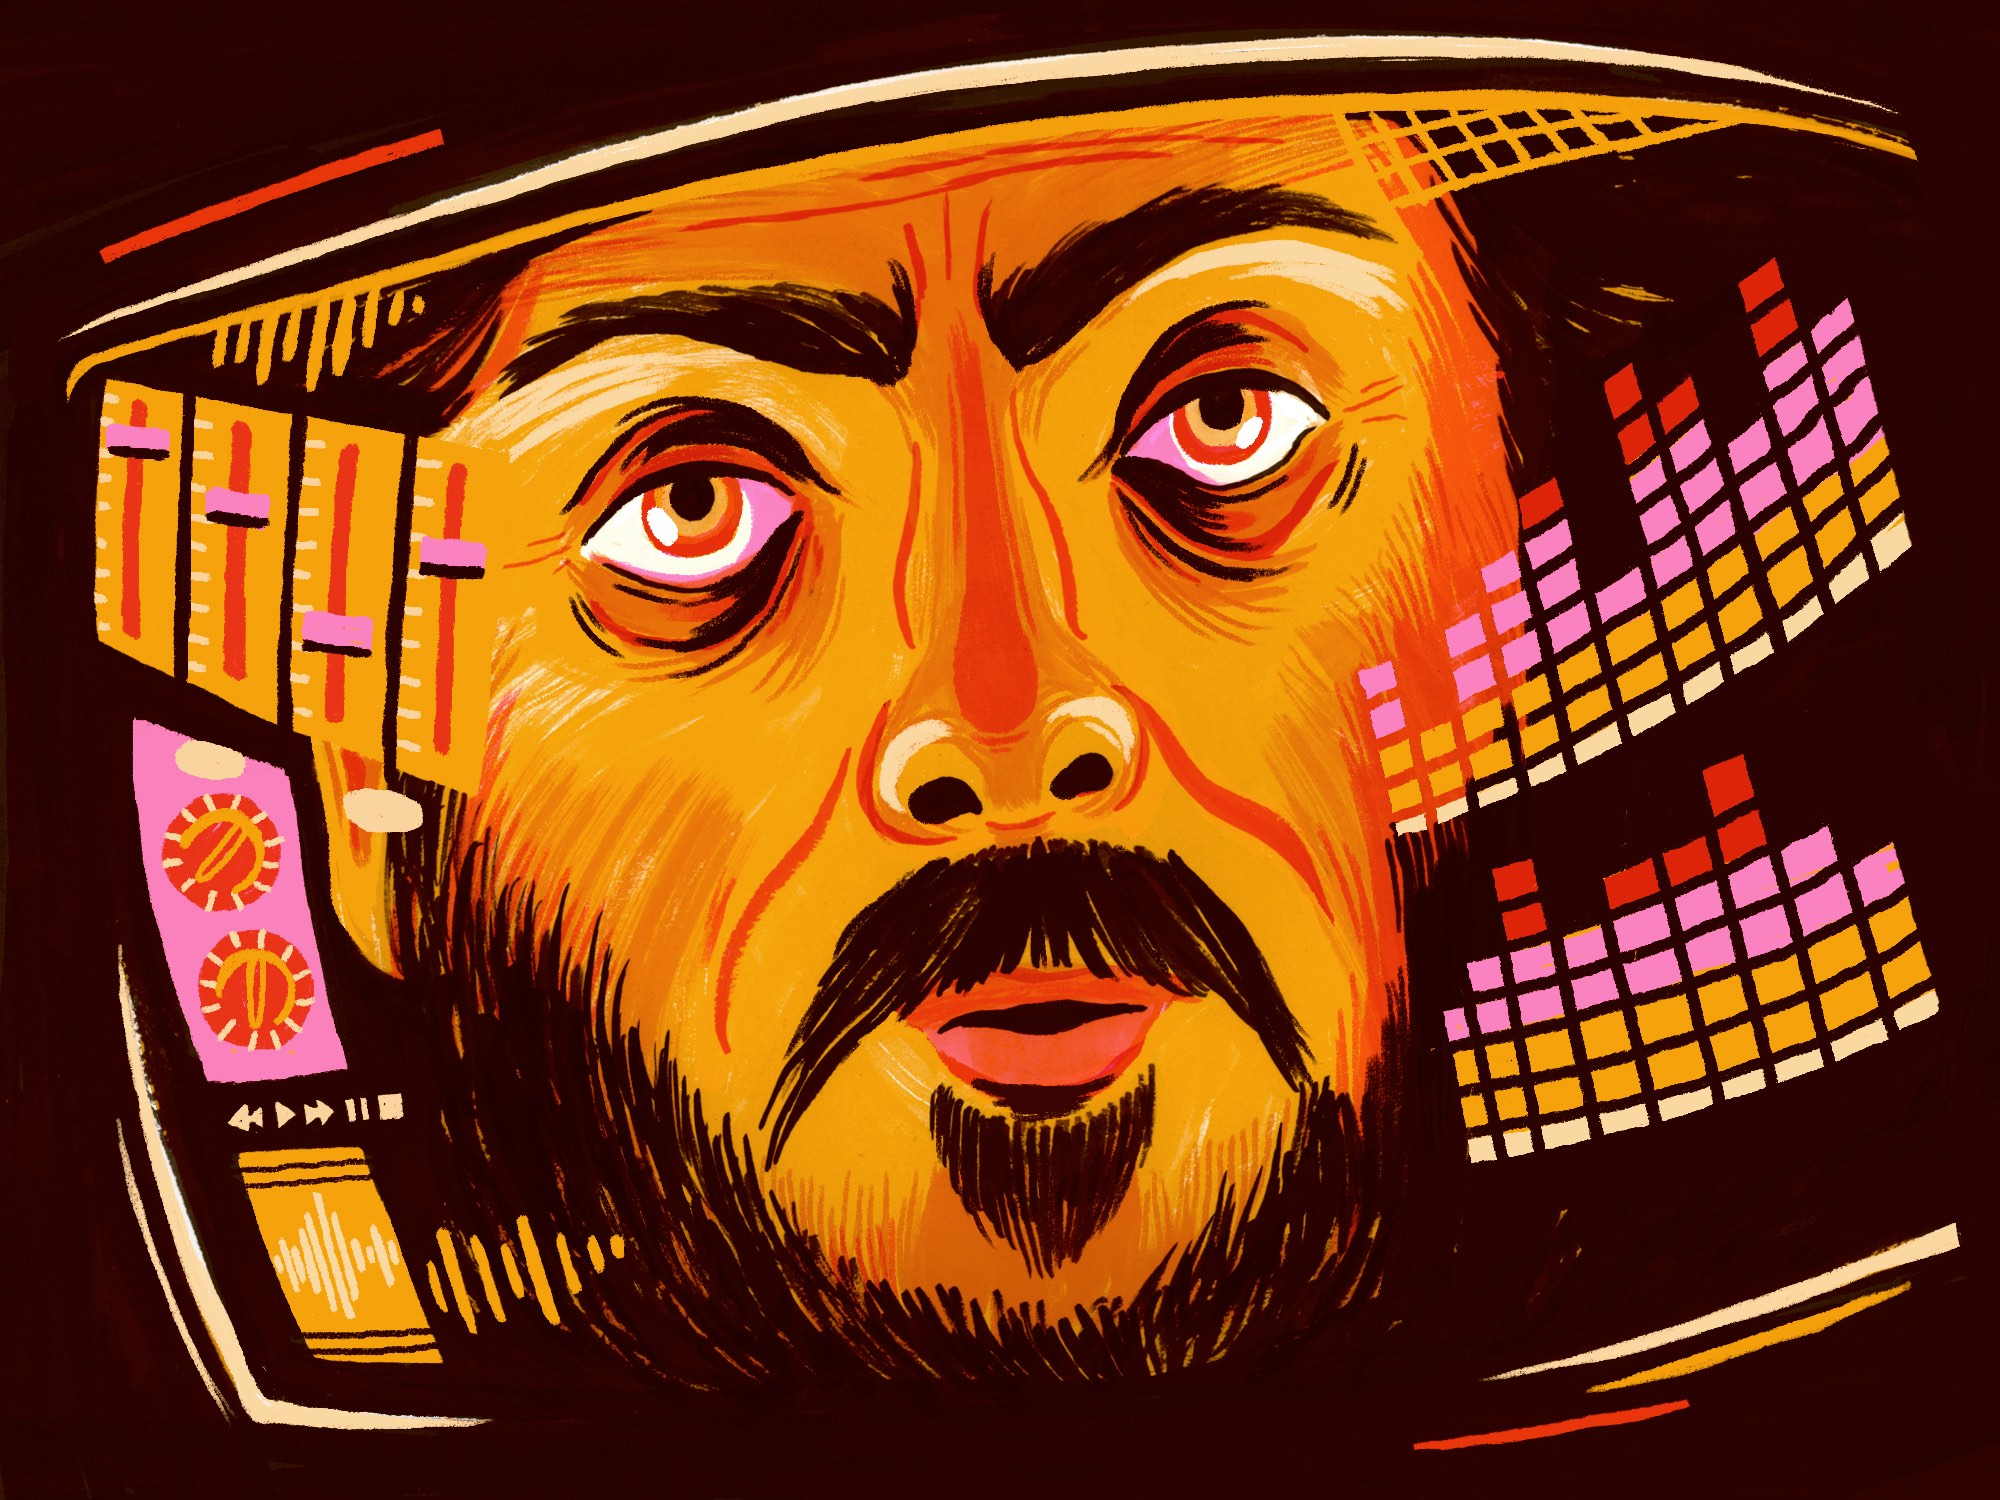 2001: A Space Odyssey illustration by Hayley Wells